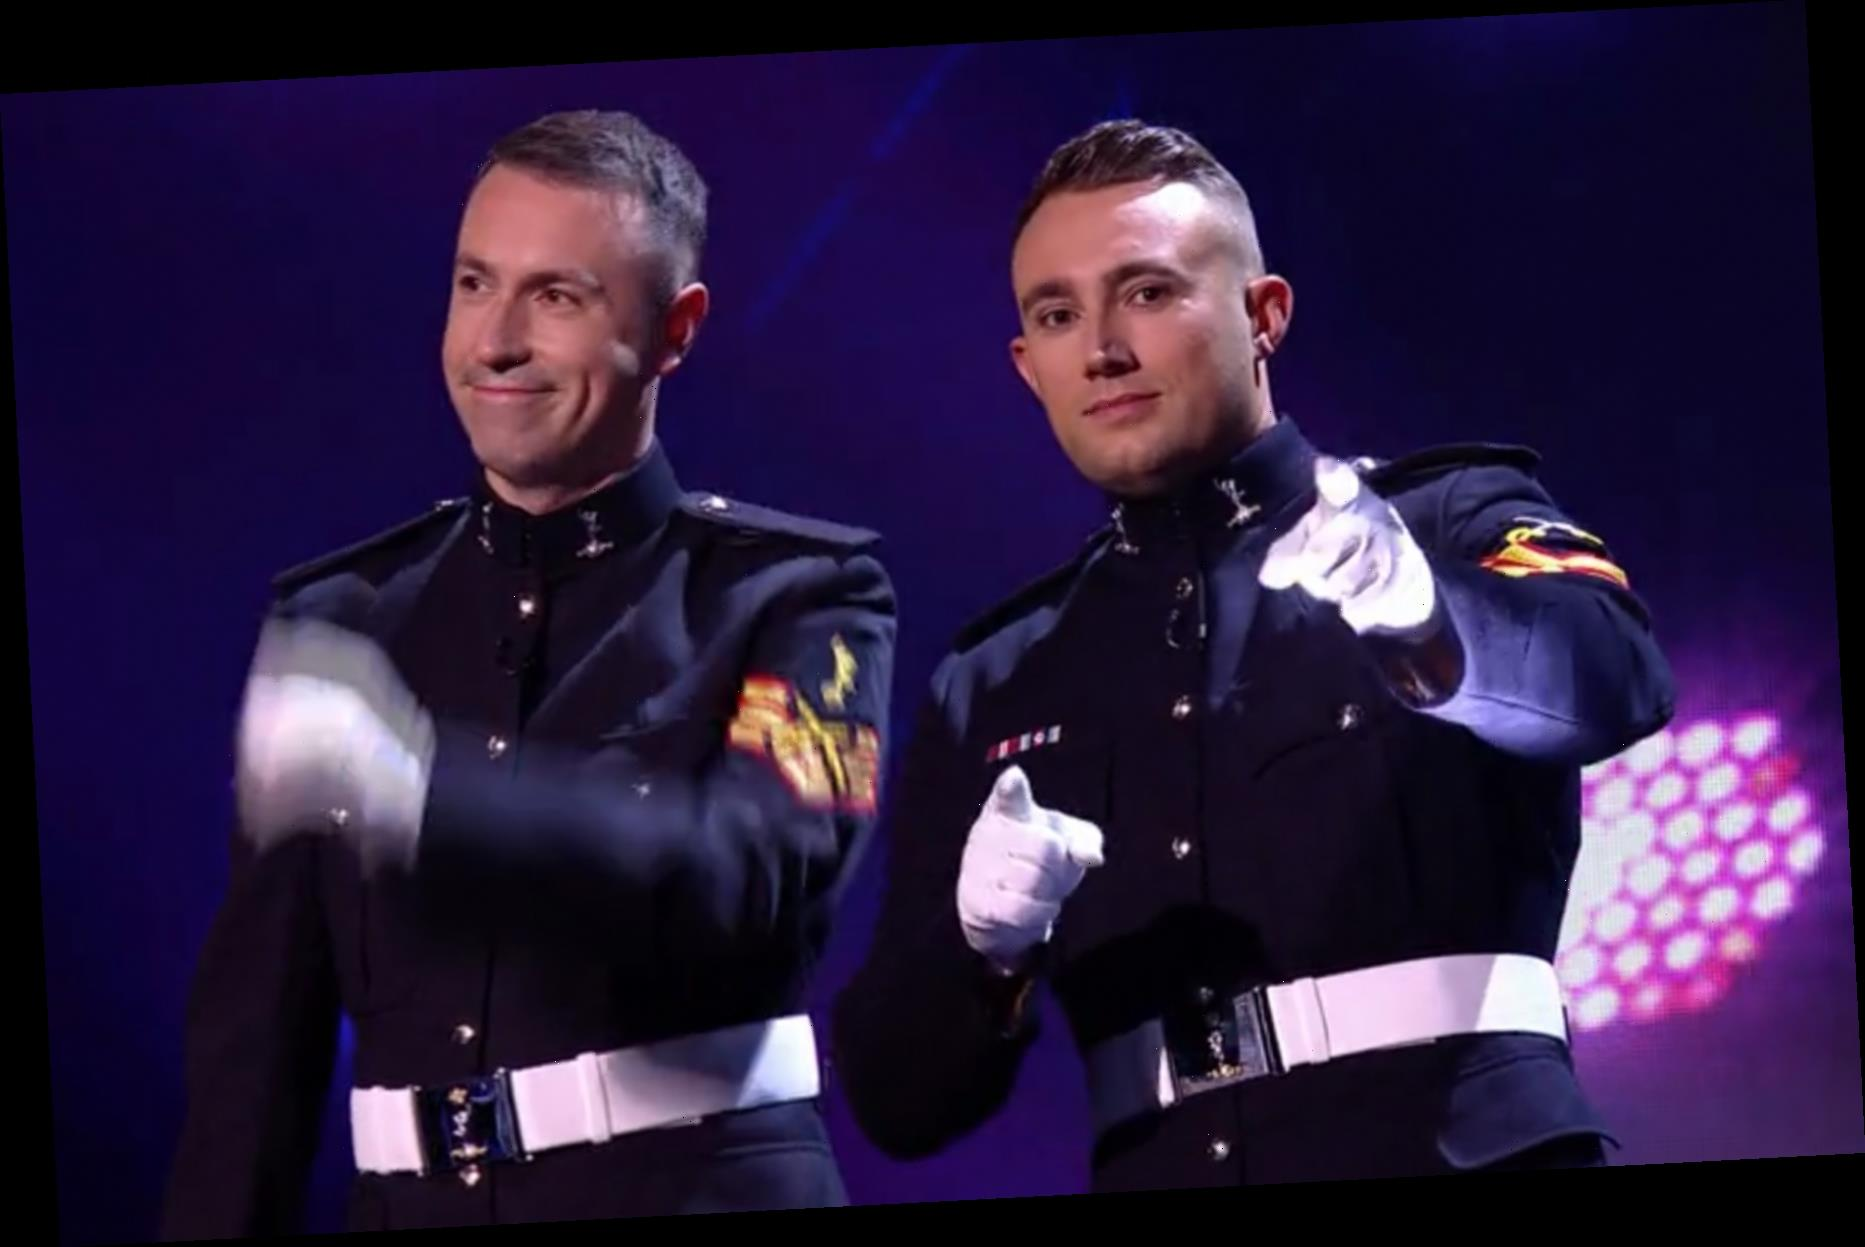 Britain's Got Talent act Soldiers of Swing say they are 'swingers' in hilarious blunder